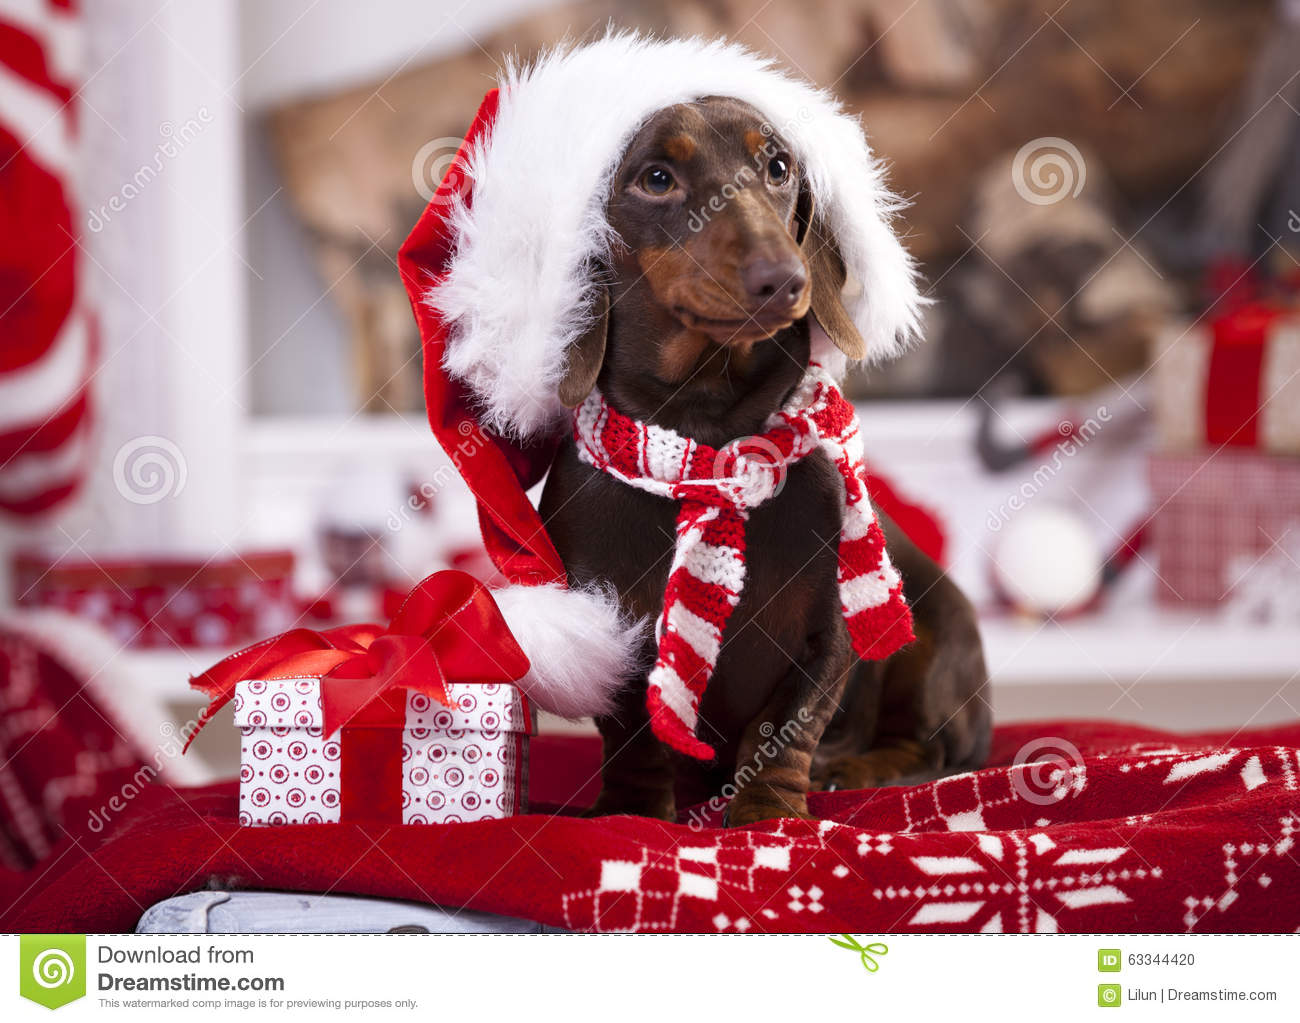 Cute Merry Christmas Wallpaper Dogs Christmas Puppy Stock Photo Image Of Dogs Gift